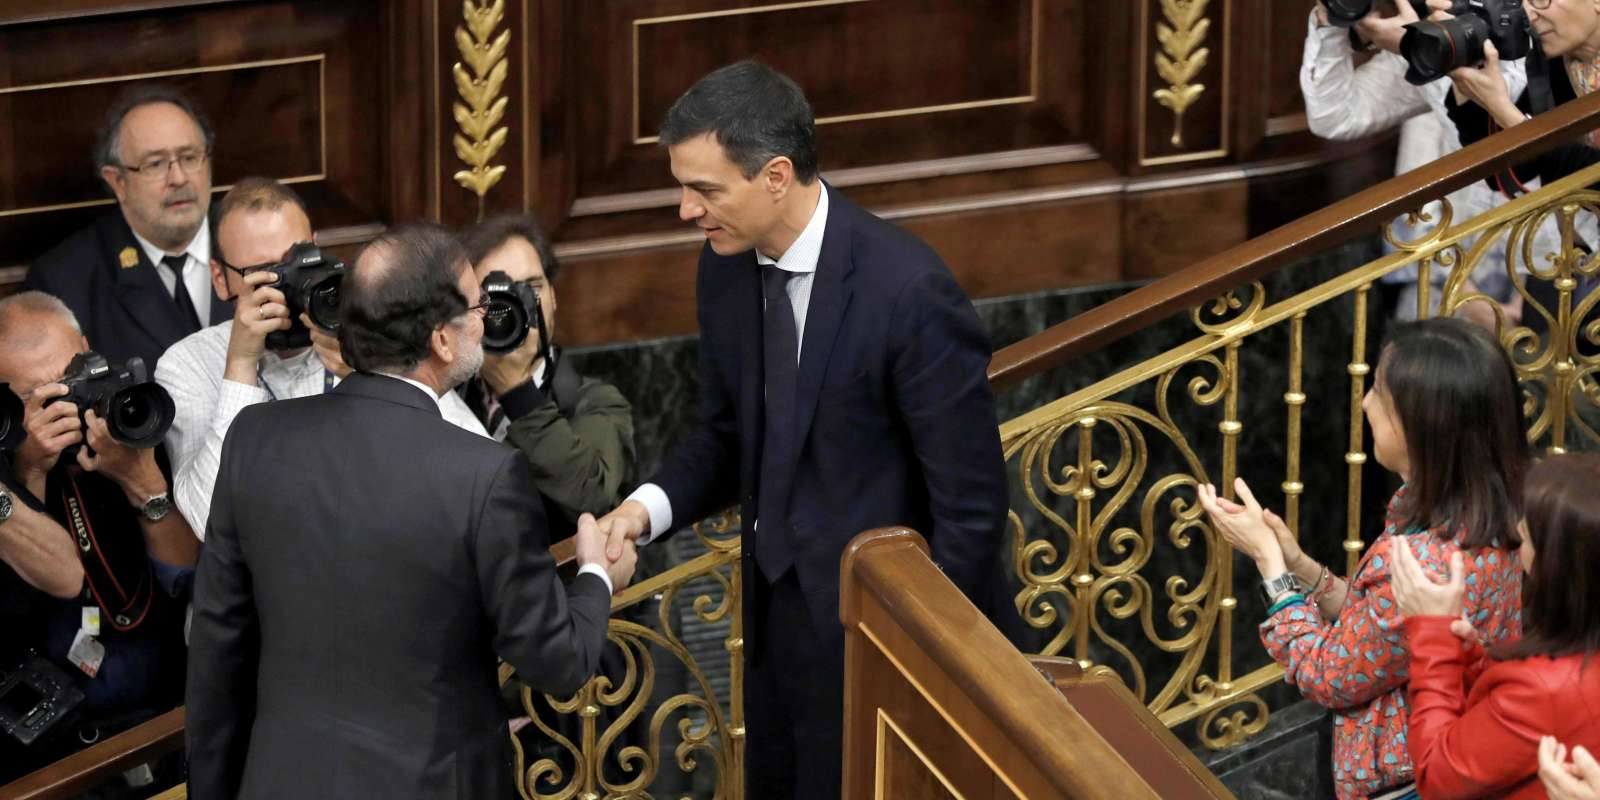 Spanish out-going Prime Minister Mariano Rajoy (L) shakes hands with Spain's new Prime Minister Pedro Sanchez after a vote on a no-confidence motion at the Lower House of the Spanish Parliament in Madrid on June 01, 2018. Spain's parliament ousted on June 1, 2018 Prime Minister Mariano Rajoy in a no-confidence vote sparked by fury over his party's corruption woes, with his Socialist arch-rival Pedro Sanchez automatically taking over. / AFP / POOL / Emilio Naranjo